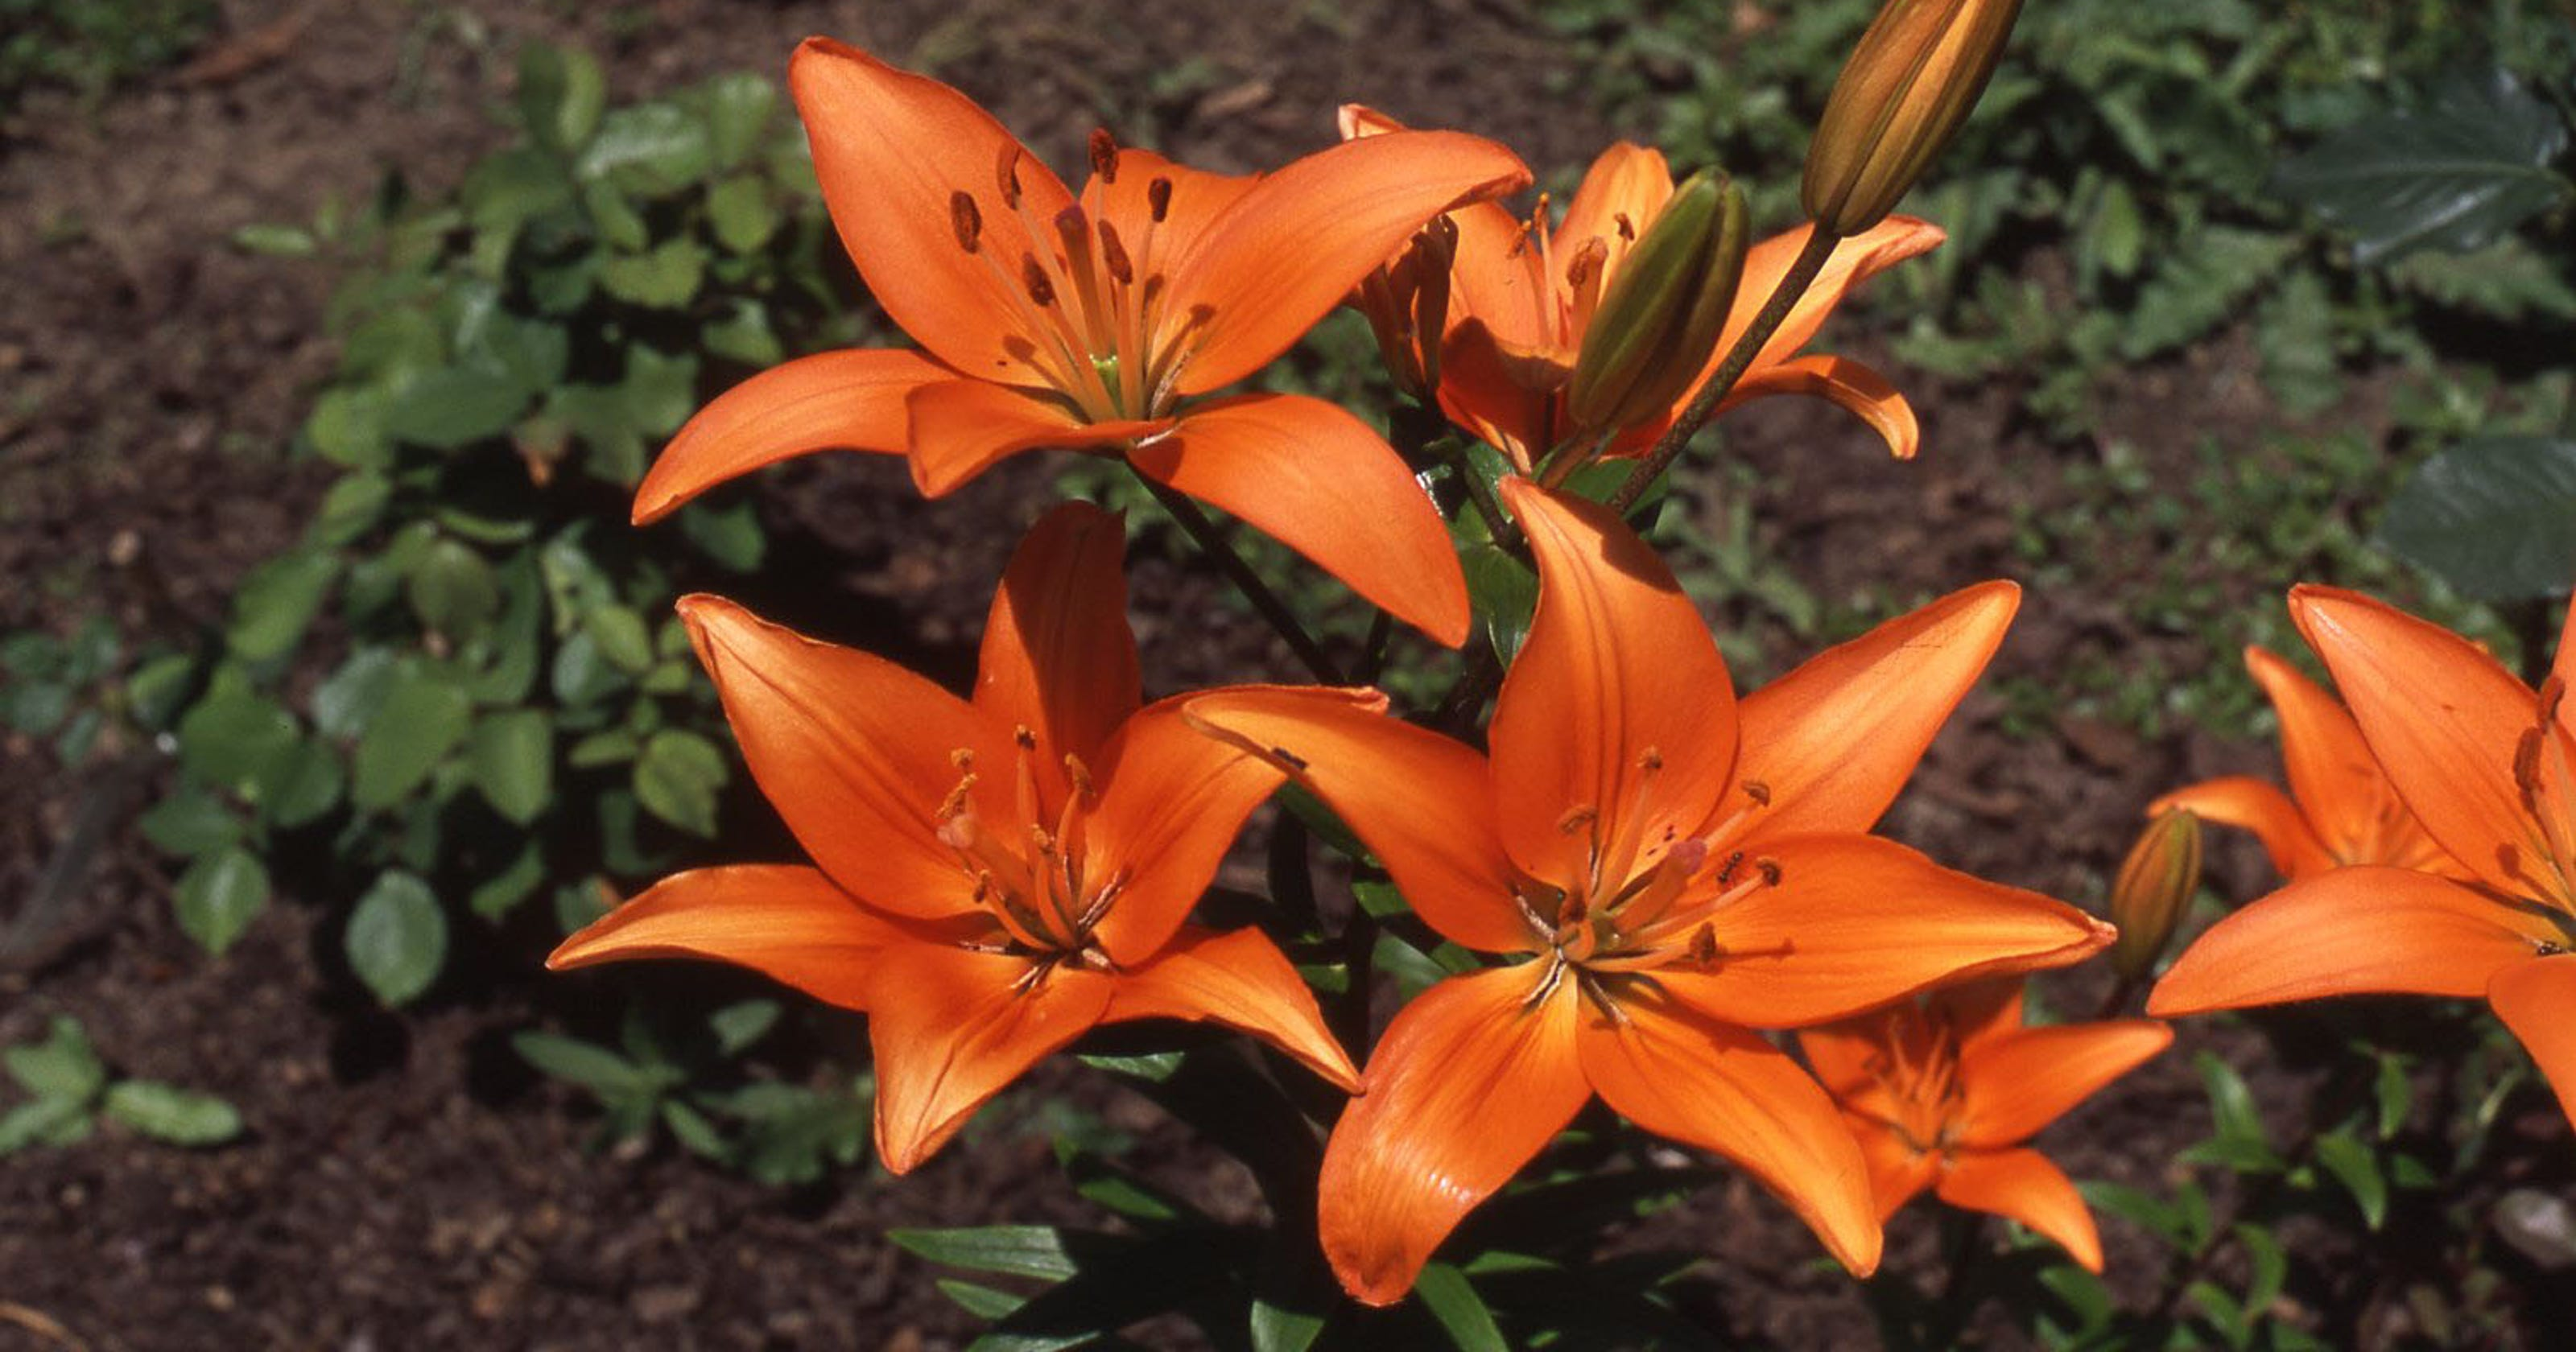 The ohio lily society show is at kingwood center july 7 8 izmirmasajfo